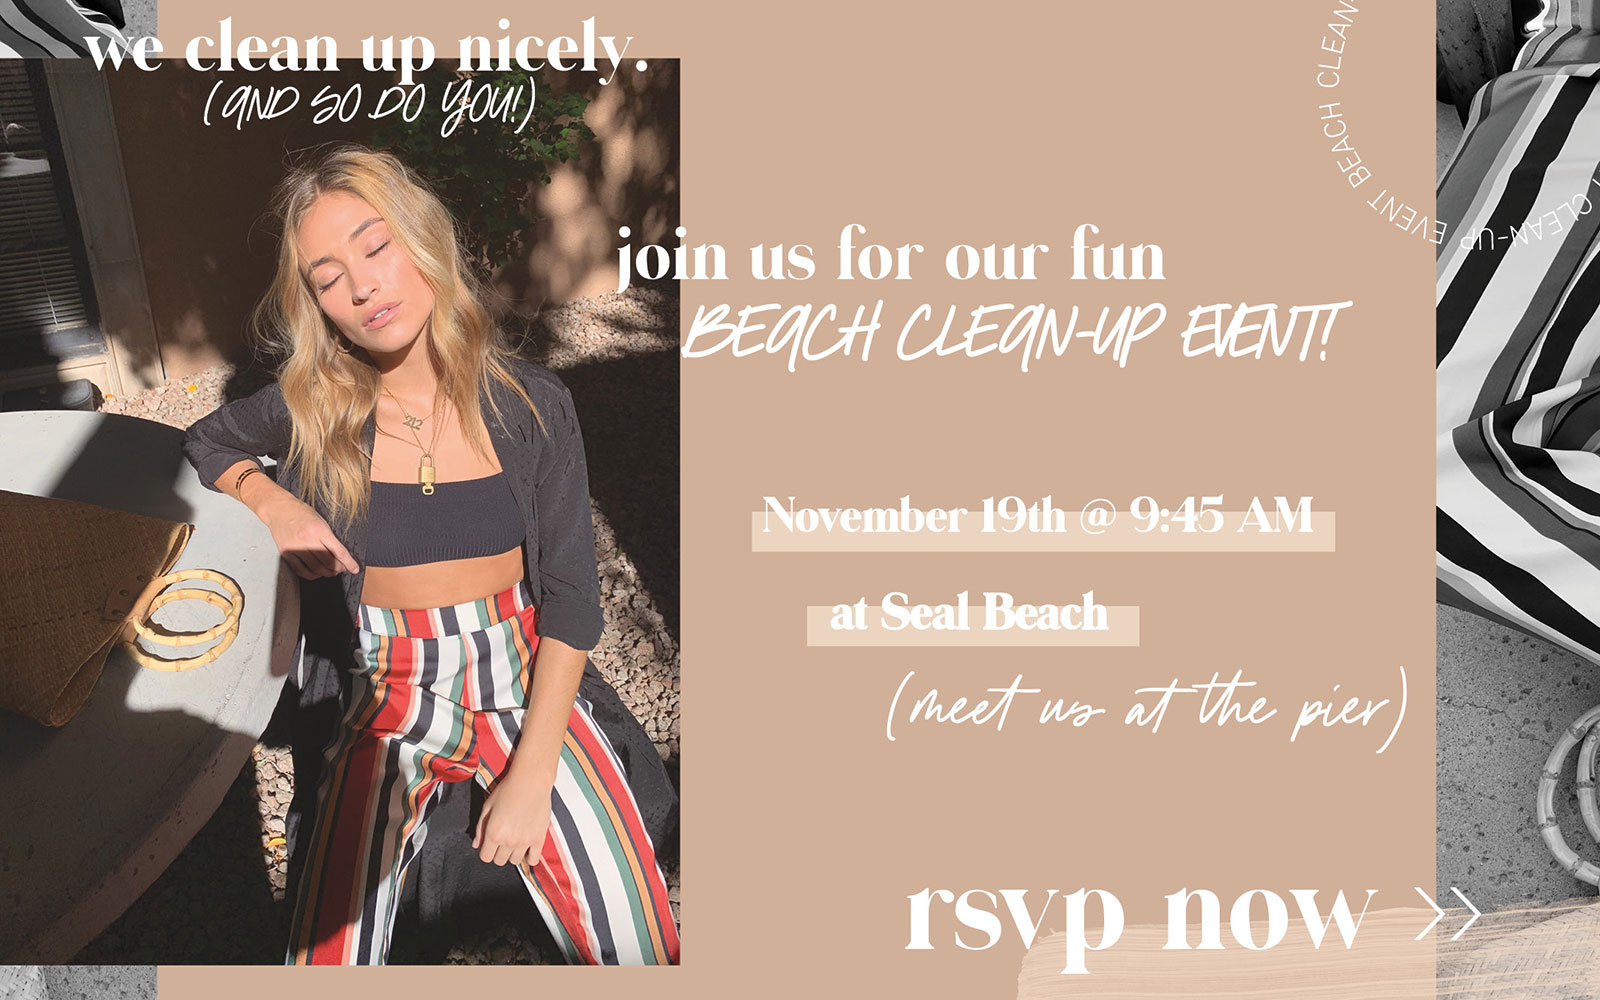 Join Saltwater Luxe's Beach Cleanup!